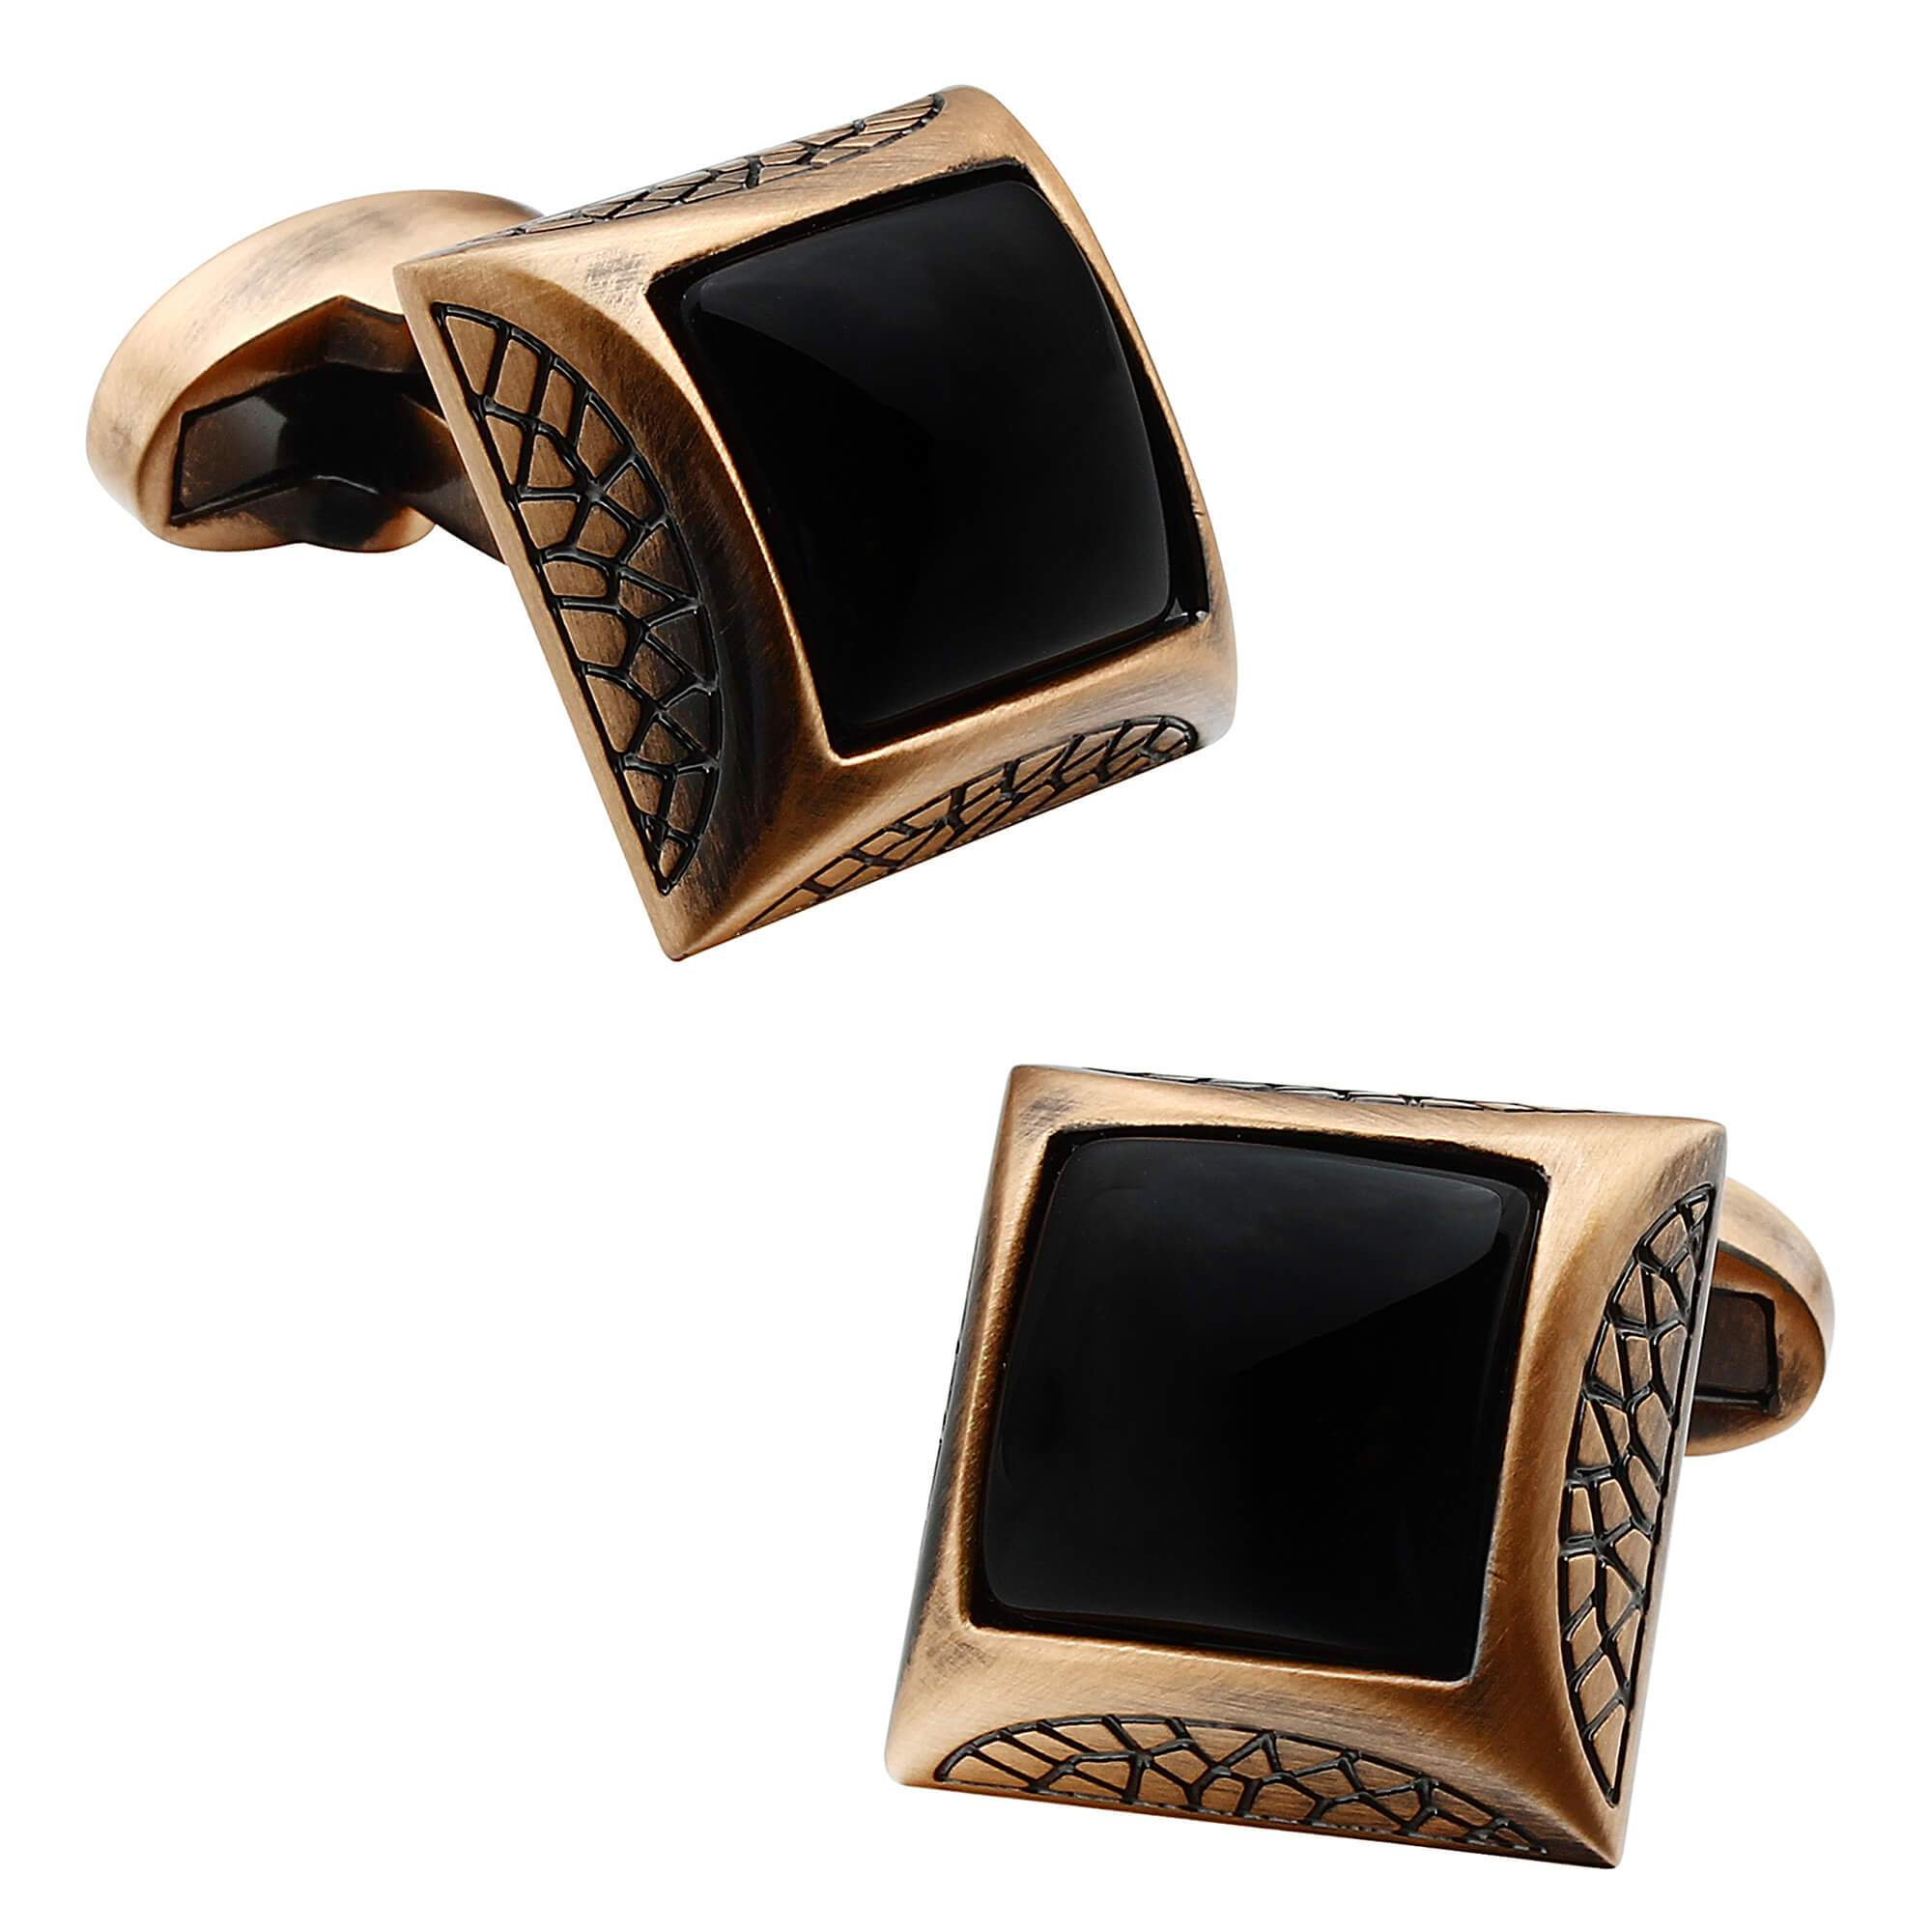 Onyx in Antique Copper Cufflinks Classic & Modern Cufflinks Clinks Australia Default